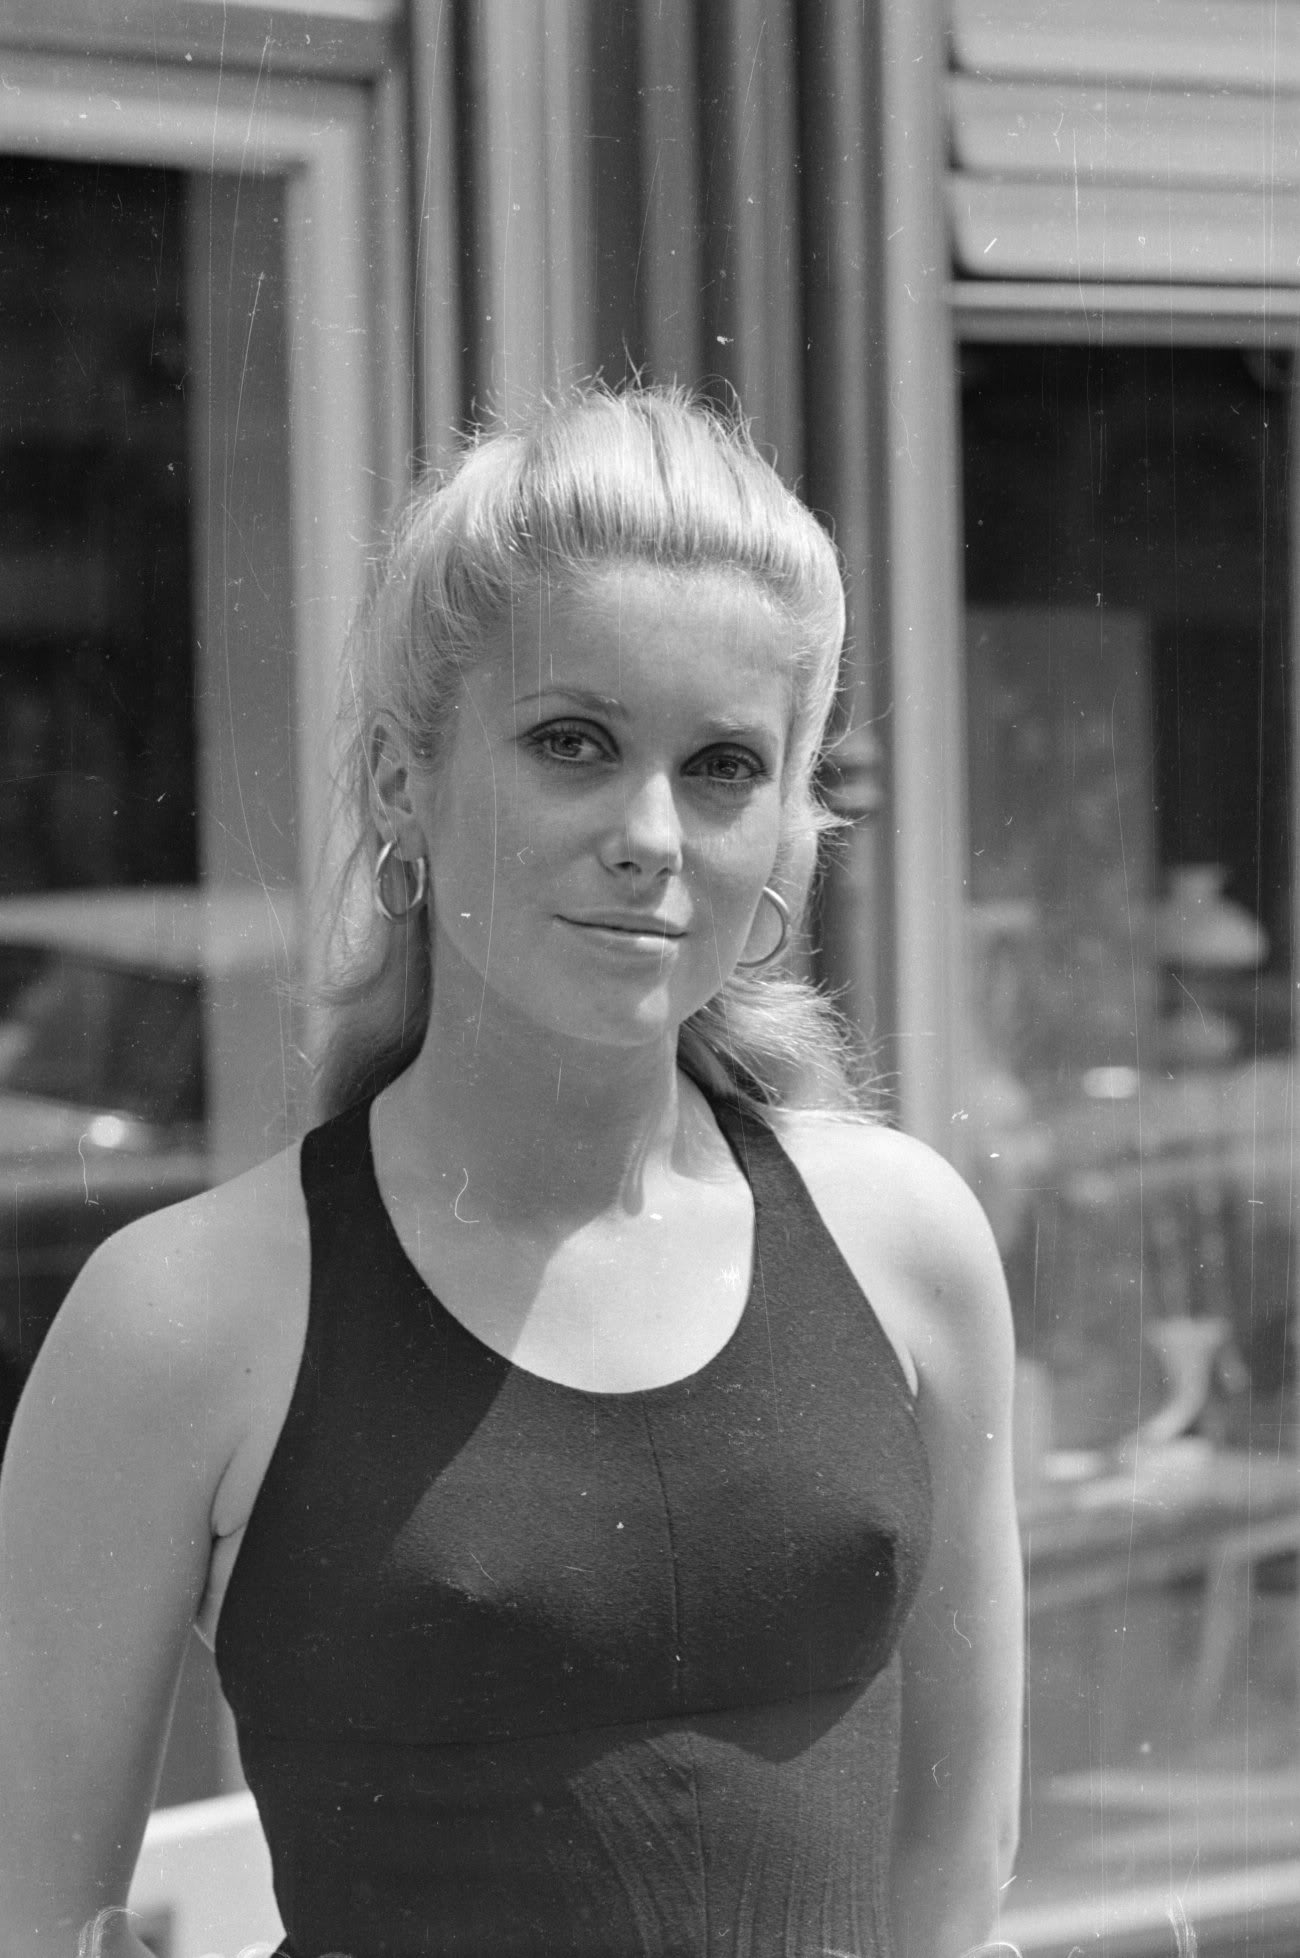 In Deneuve A Deneuve A Catherine Swimsuit Swimsuit In Catherine Deneuve Catherine In A j35L4AR